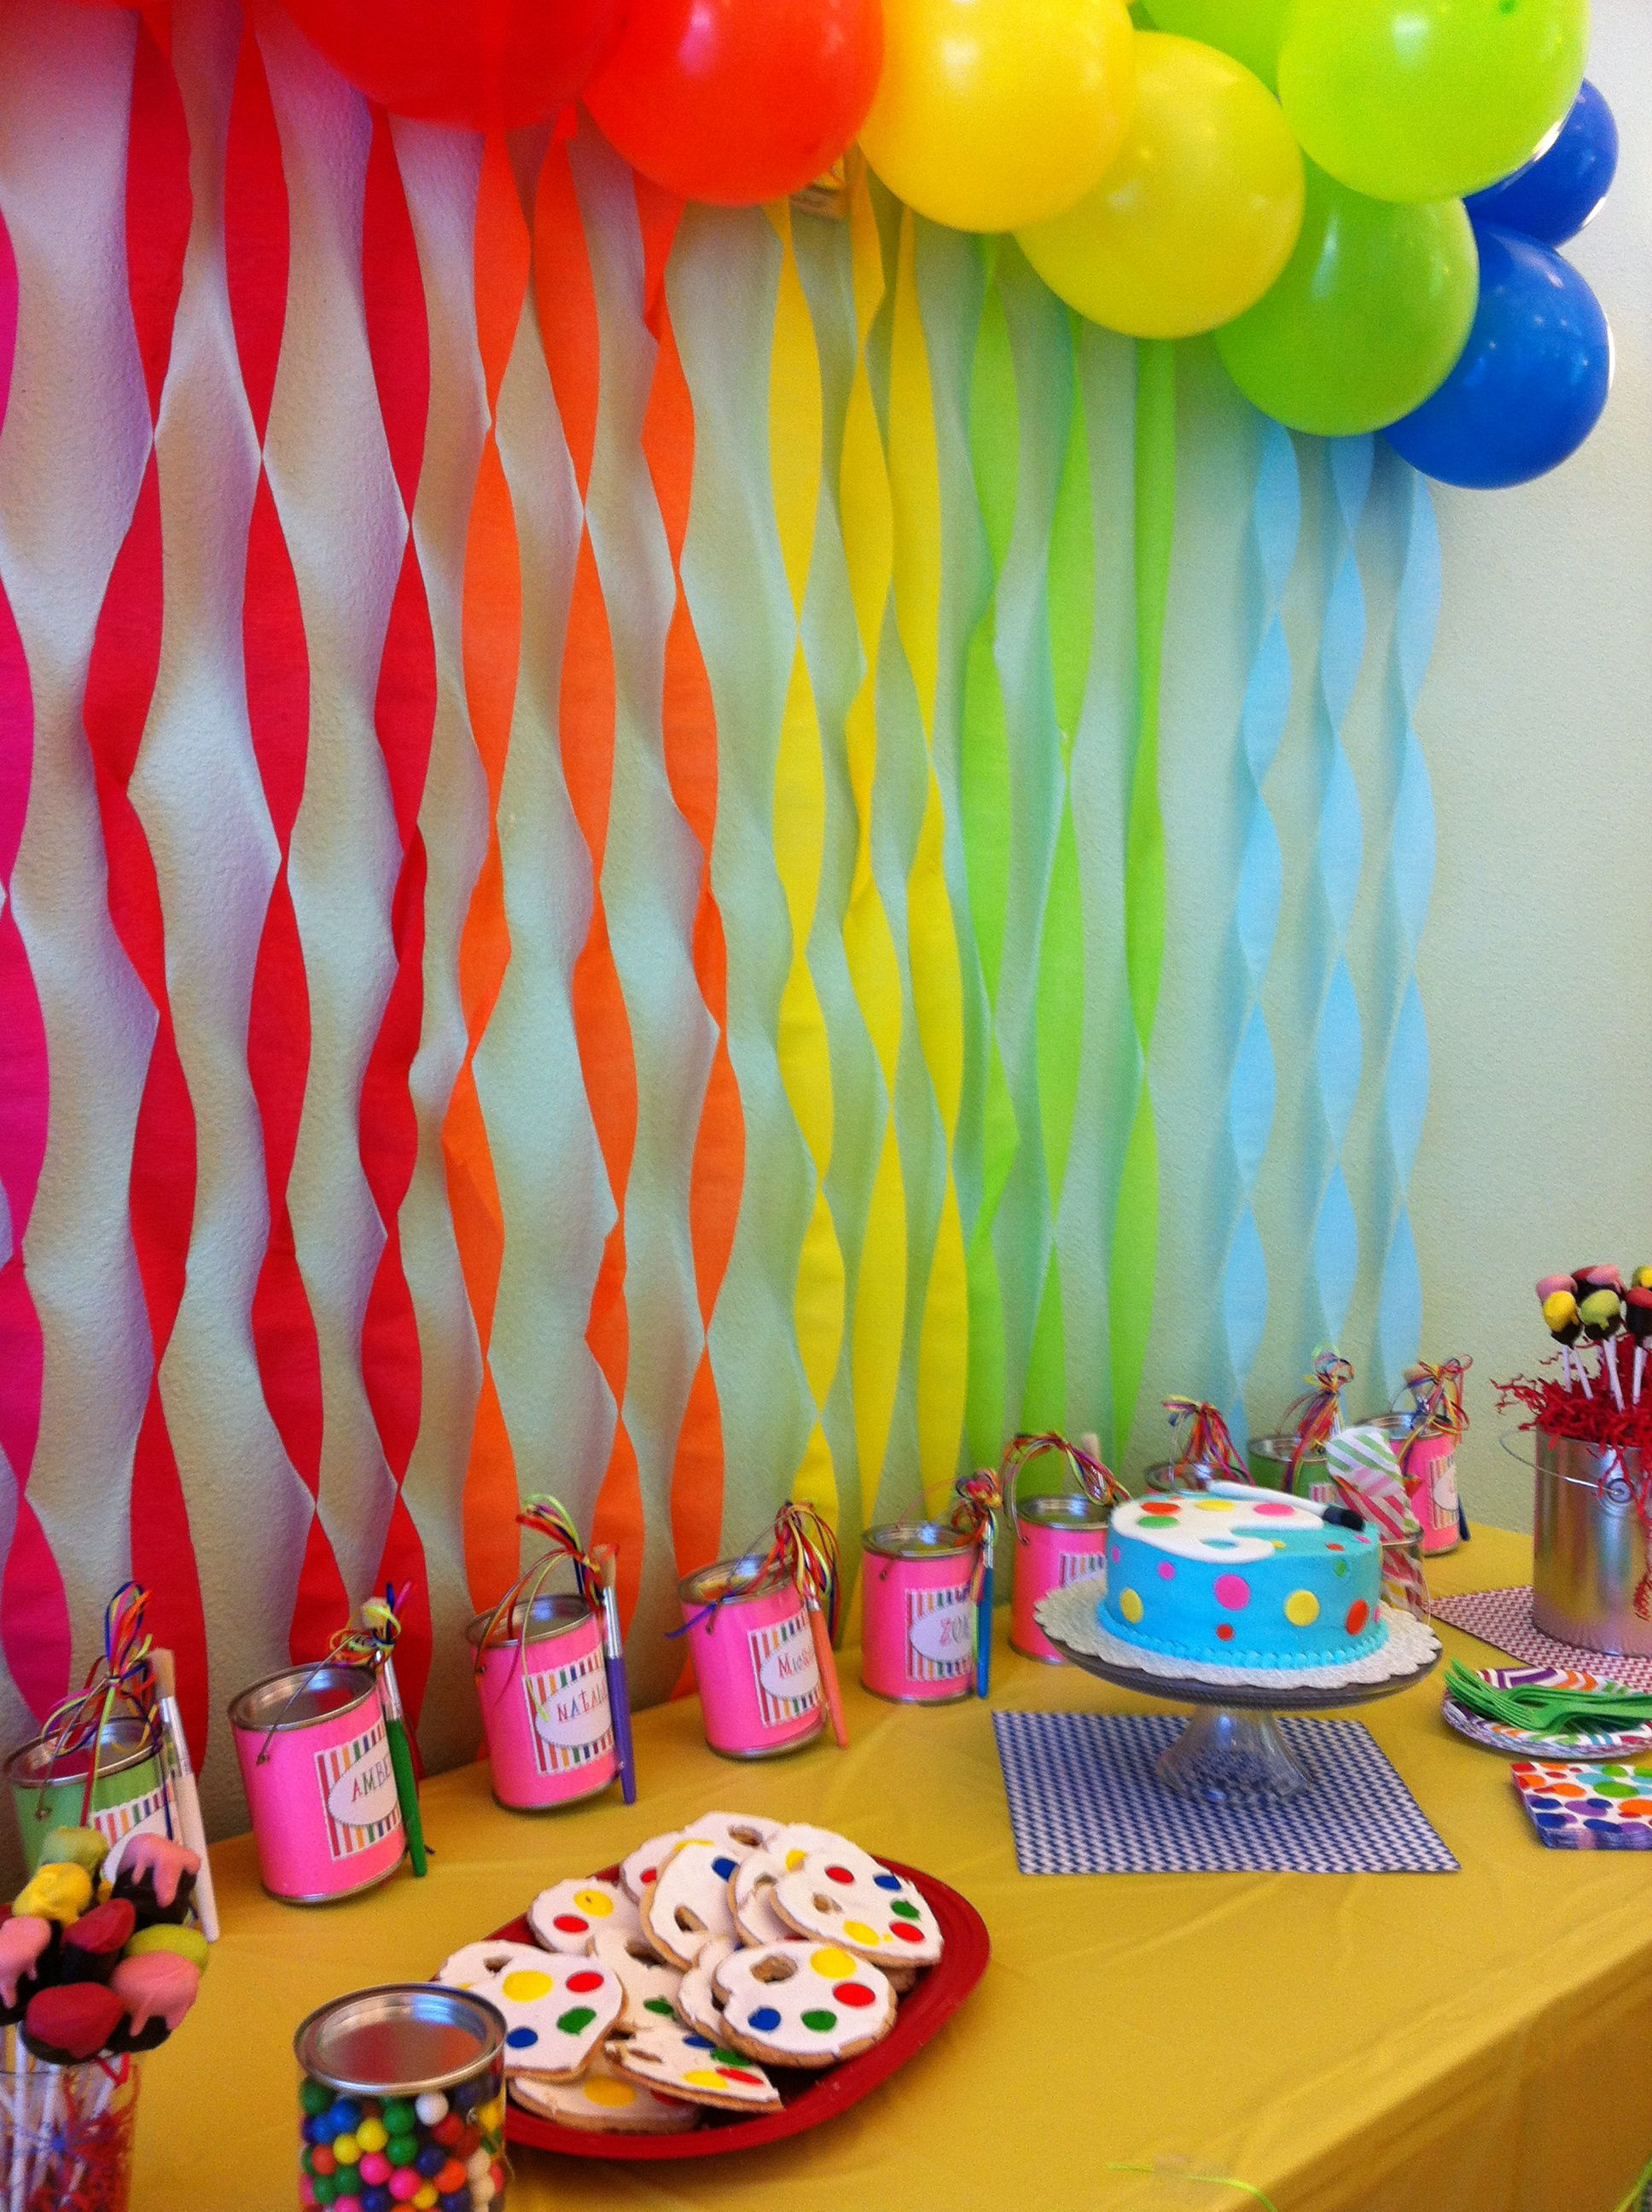 8 Year Old Girl Birthday Art Party Art Party Pinterest Art Party Girl Birthday And Birthdays